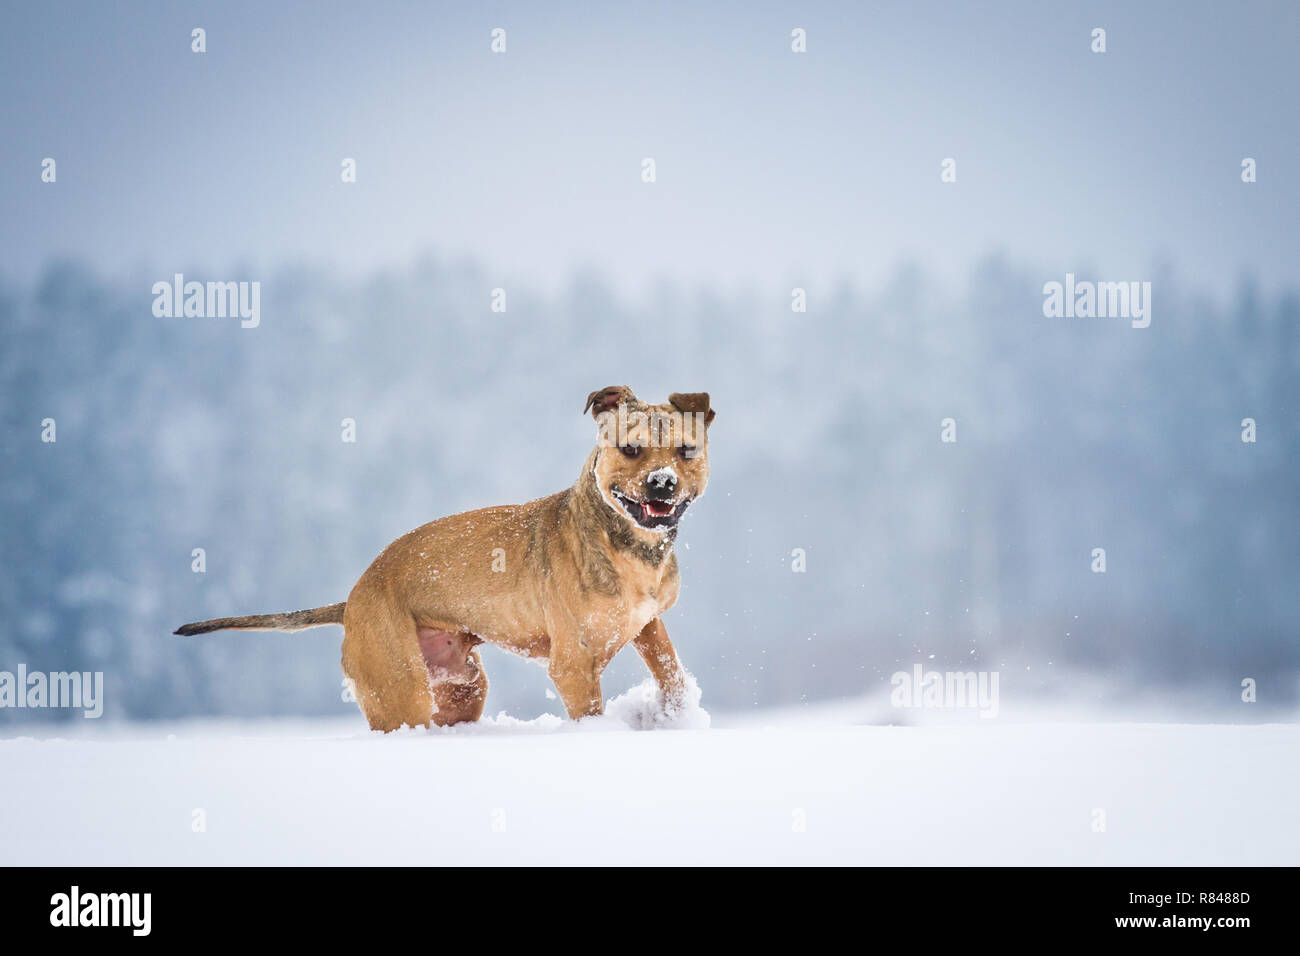 American Pit Bull Terrier running and playing in the snow - Stock Image